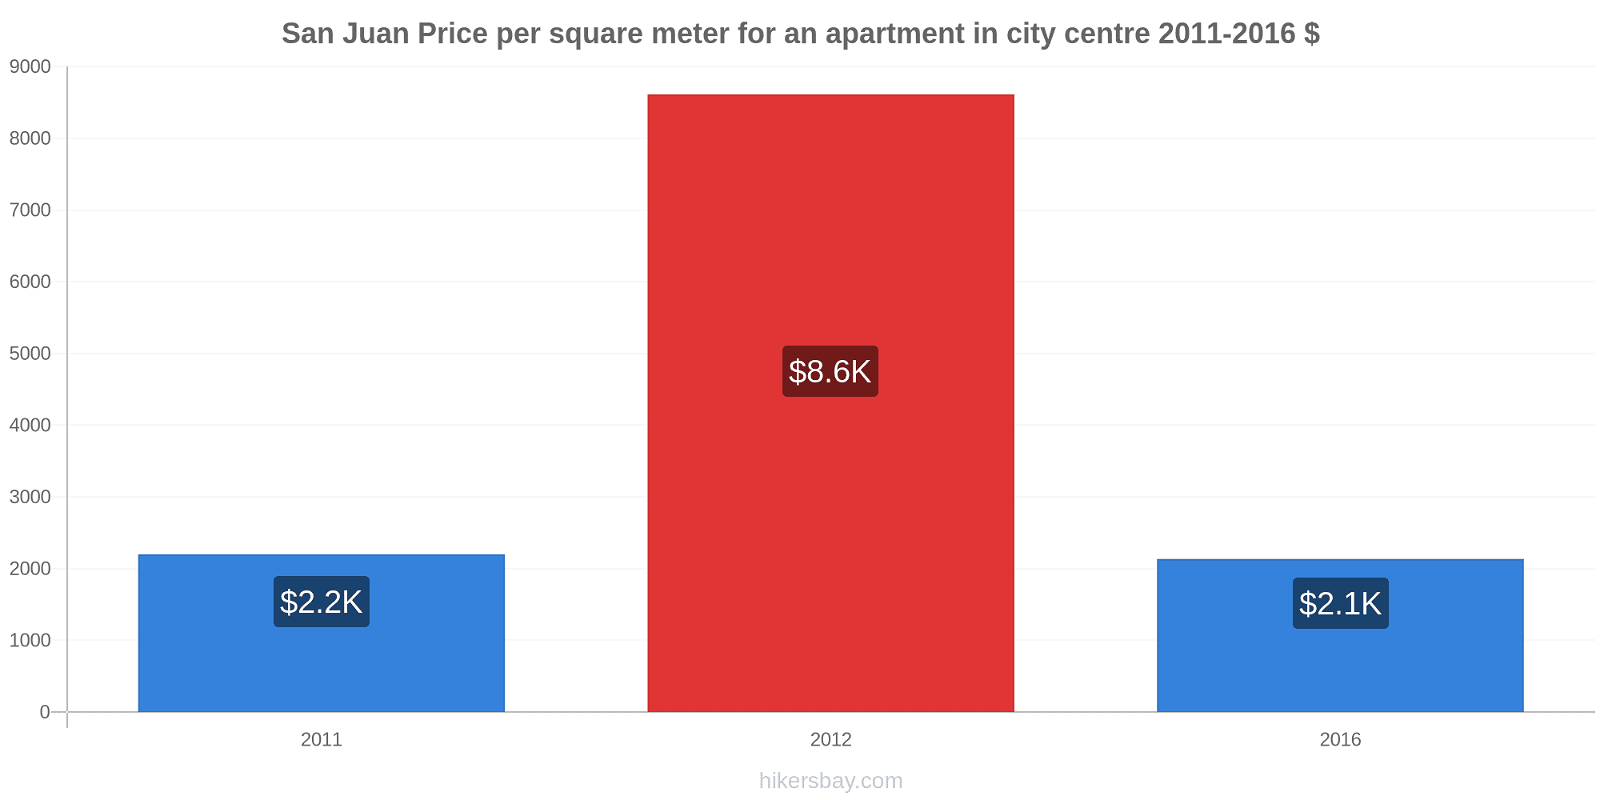 San Juan price changes Price per square meter for an apartment in city centre hikersbay.com